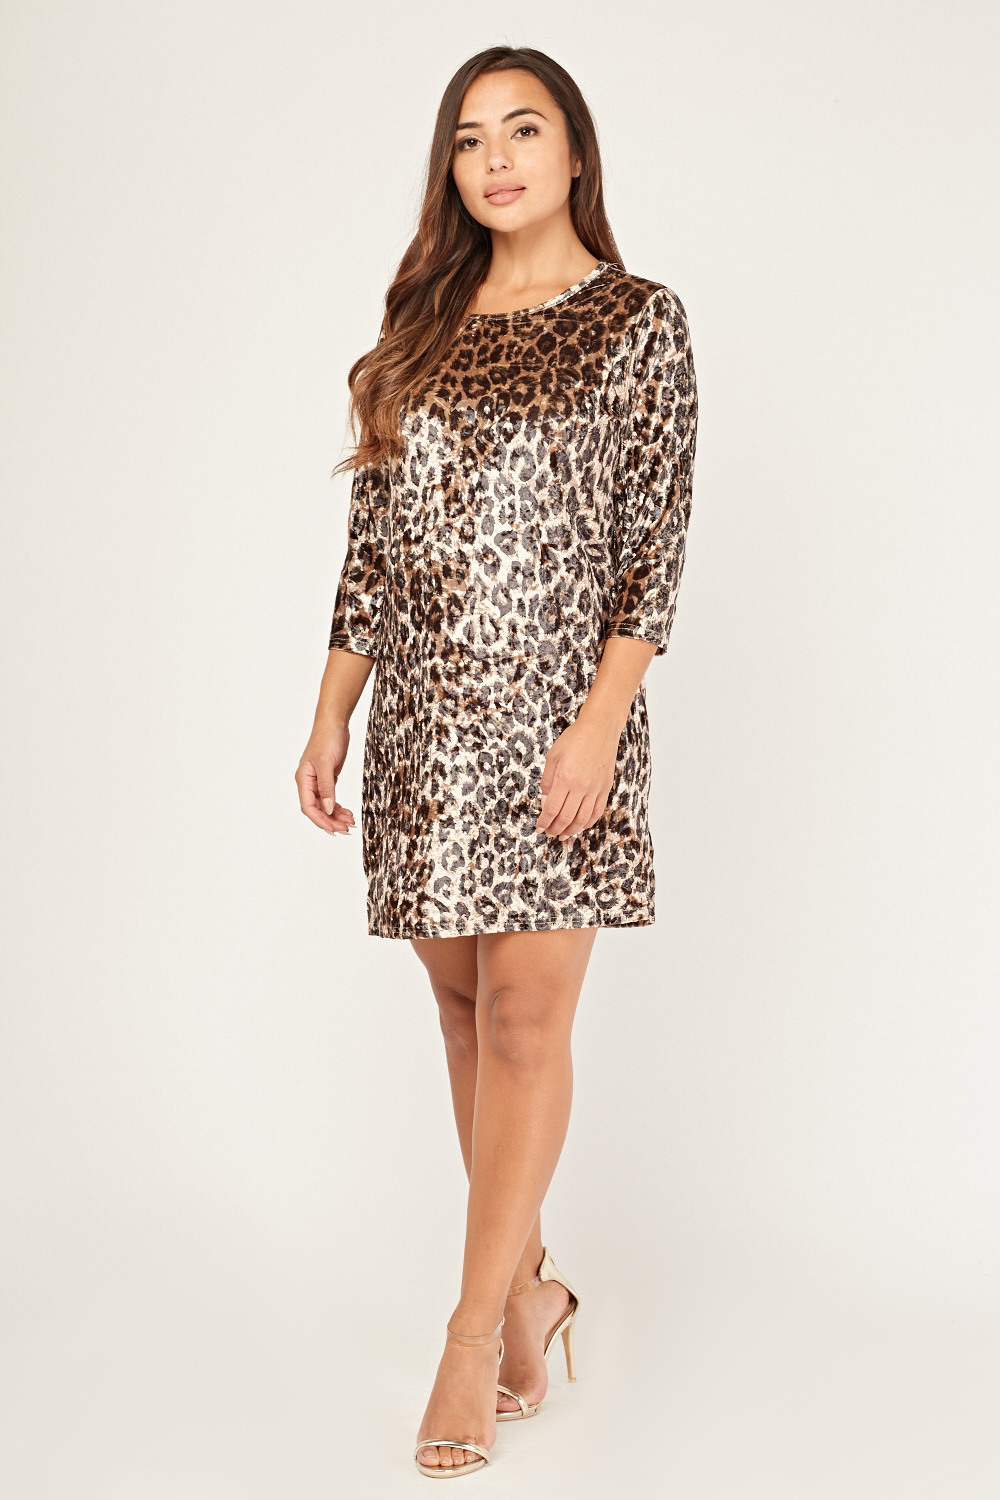 c76ee6d2a1 Leopard Print Velveteen Shift Dress - Just £5